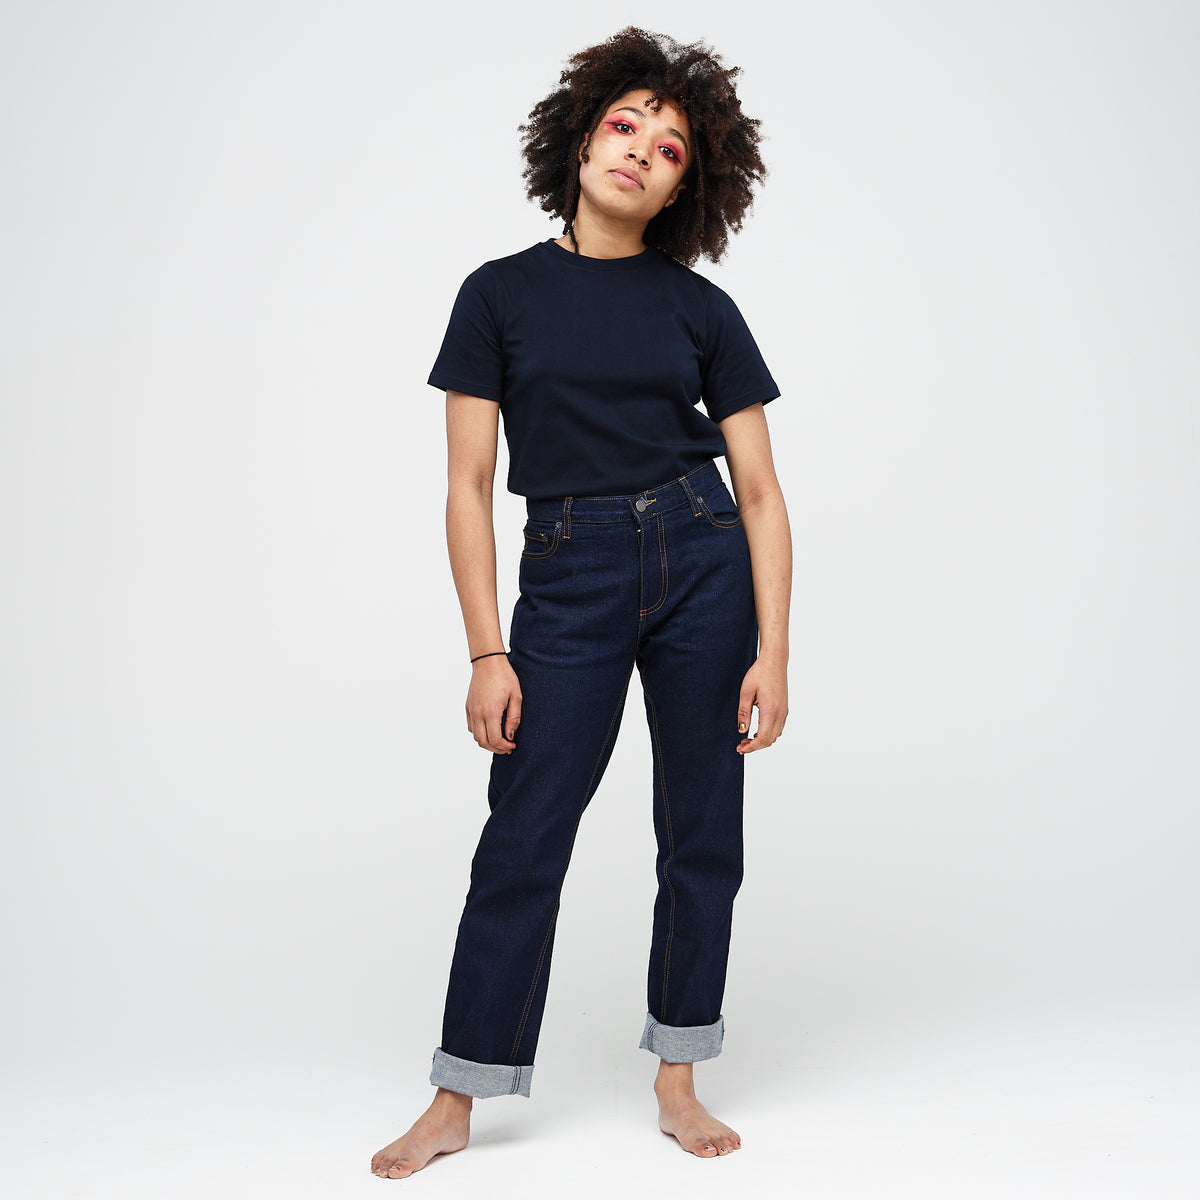 Women's Classic T-Shirt Navy - Community Clothing